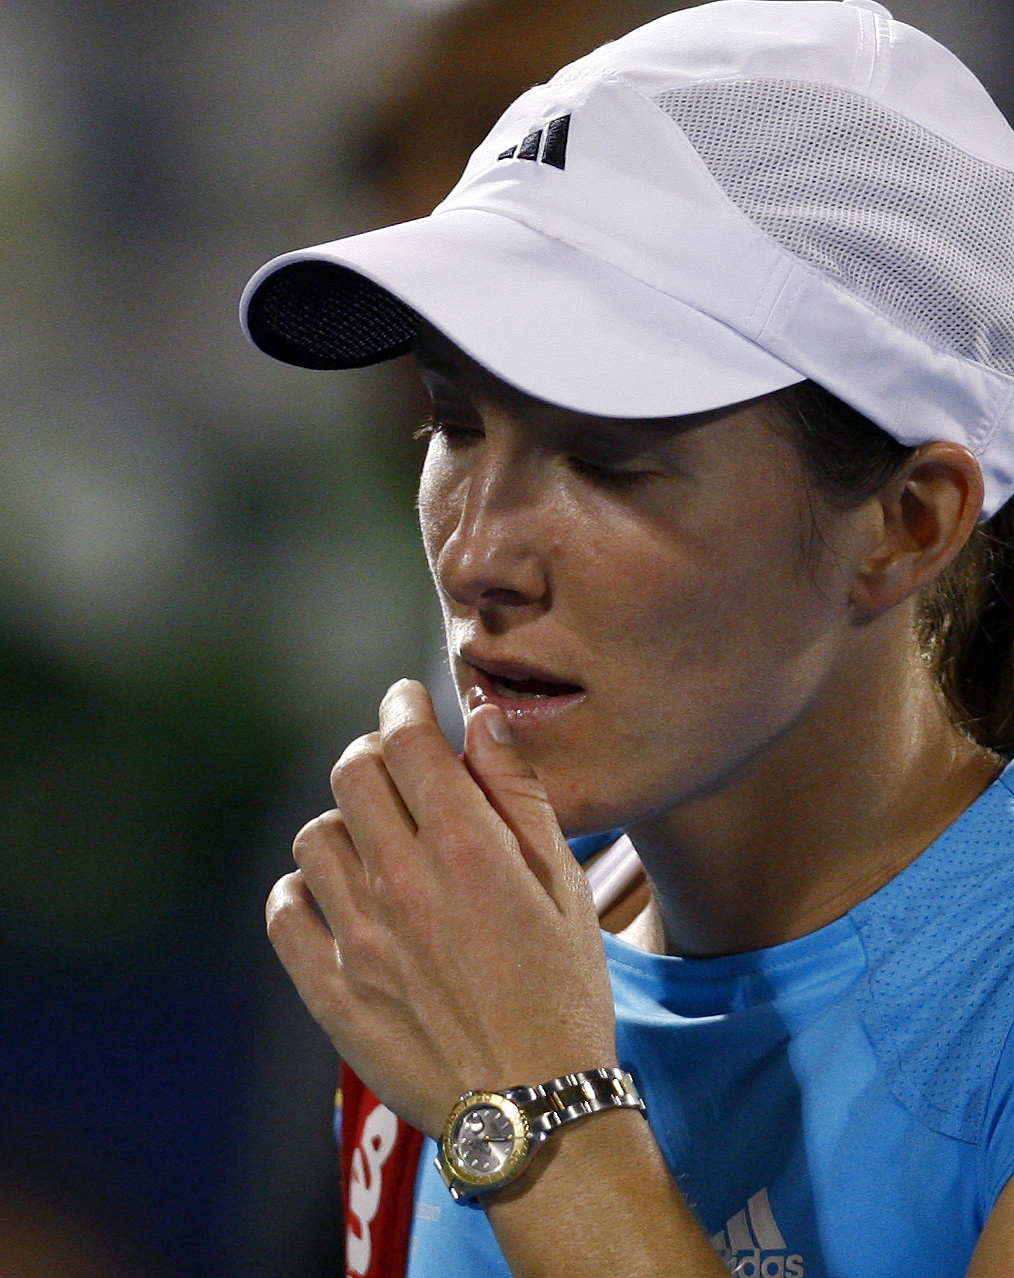 Justine Henin walks from the court after being defeated by Francesca Schiavone at the WTA Dubai Tennis Championships in Dubai, United Arab Emirates on...